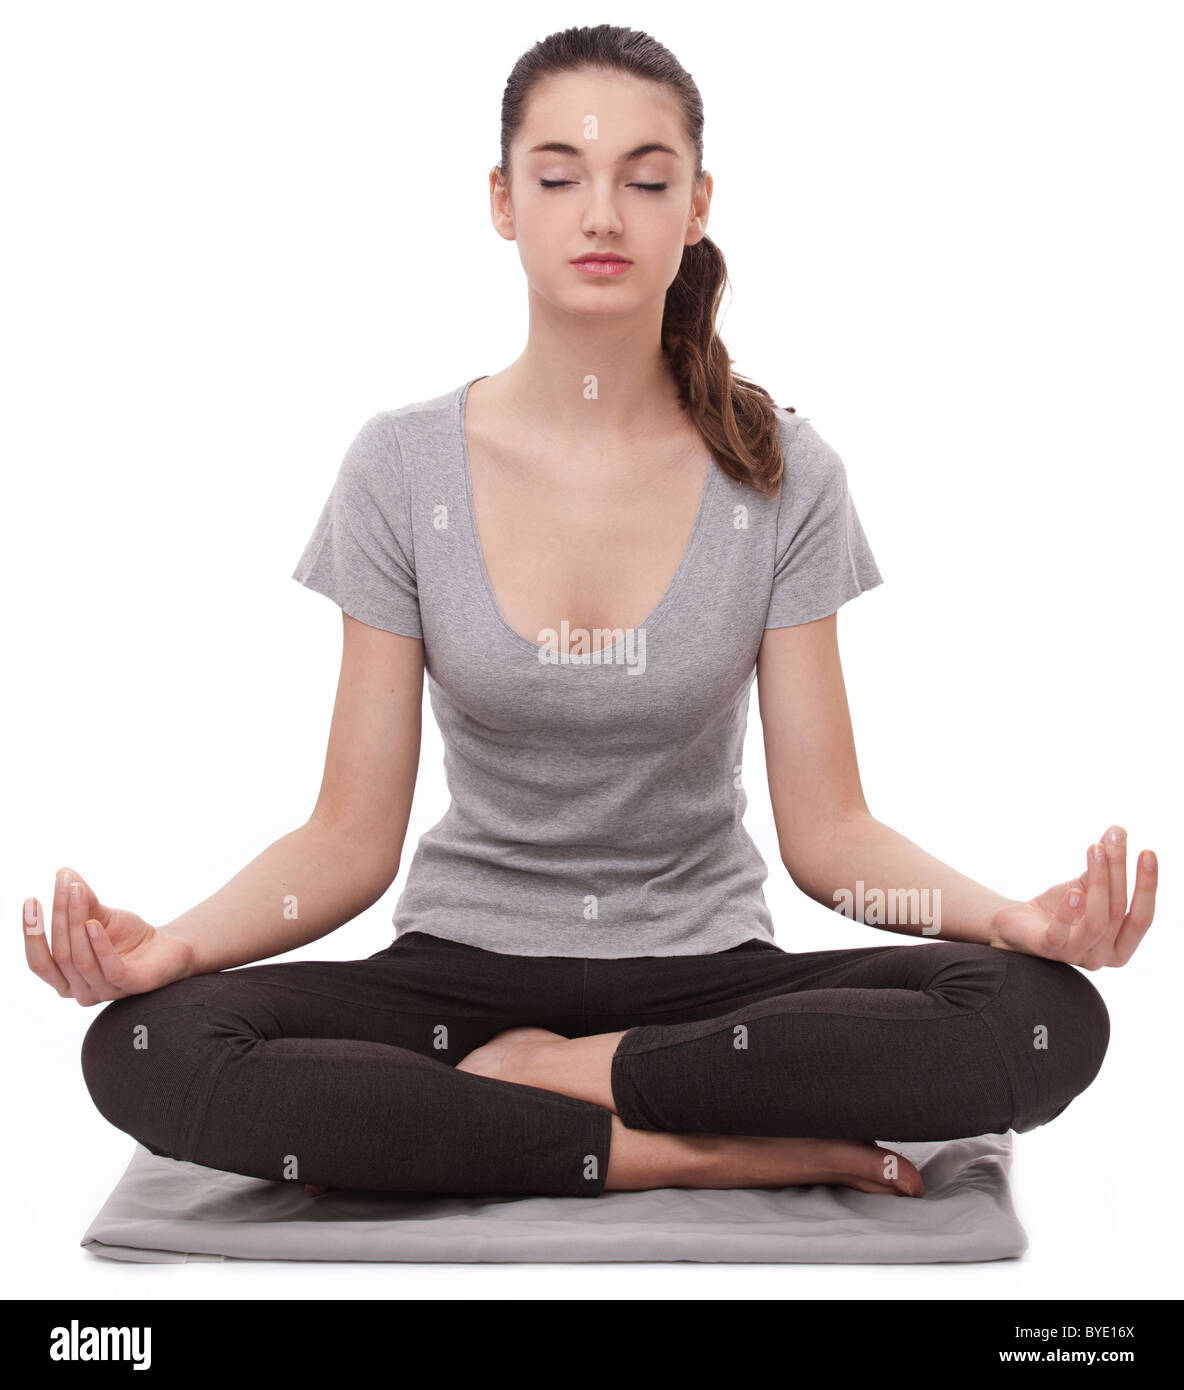 Girl practicing yoga. Isolated in a white background. - Stock Image